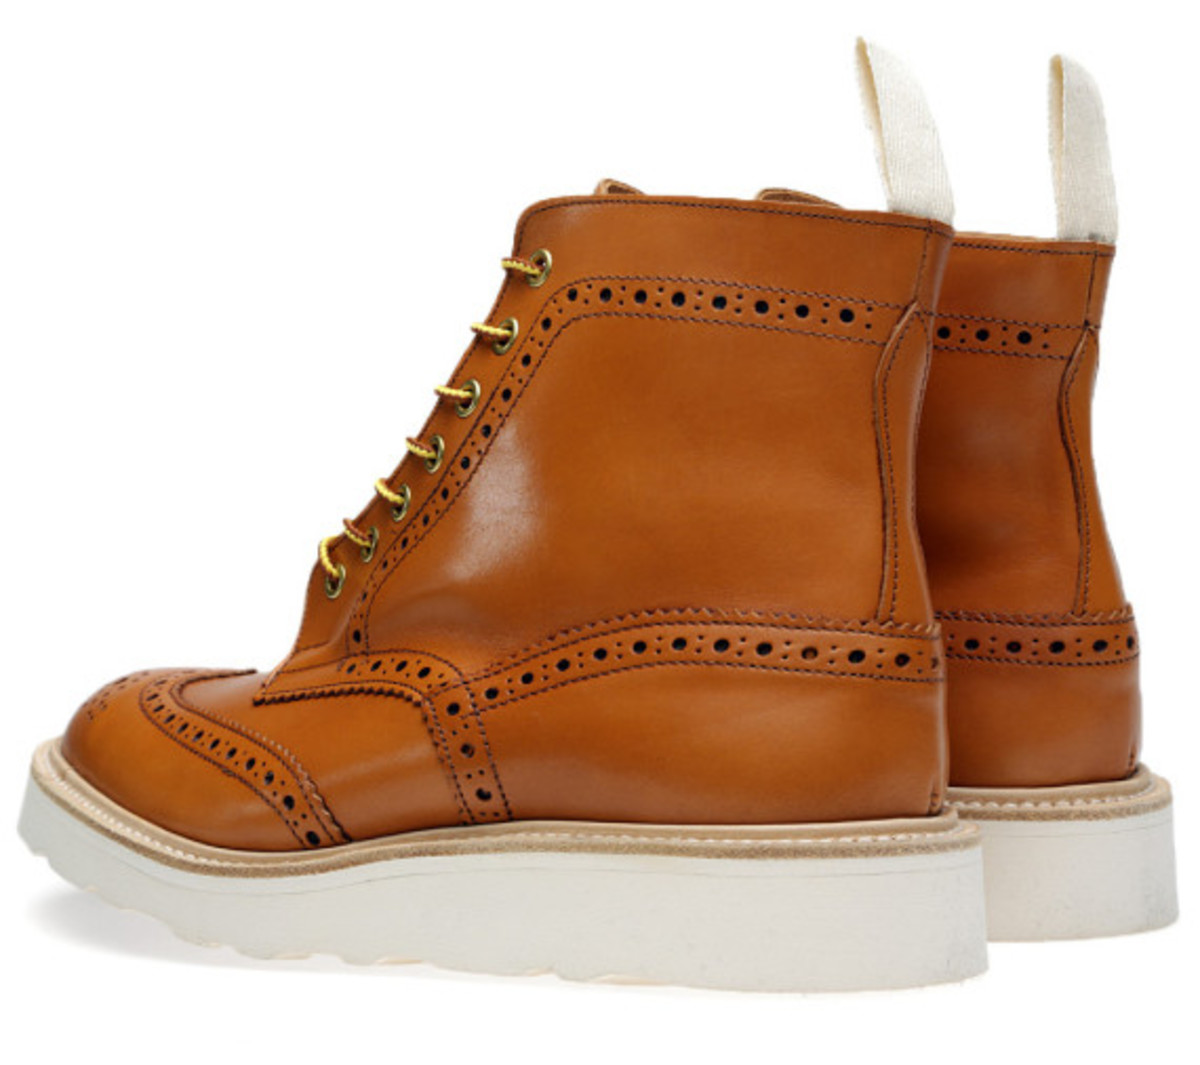 end-trickers-vibram-sole-stow-boot-24